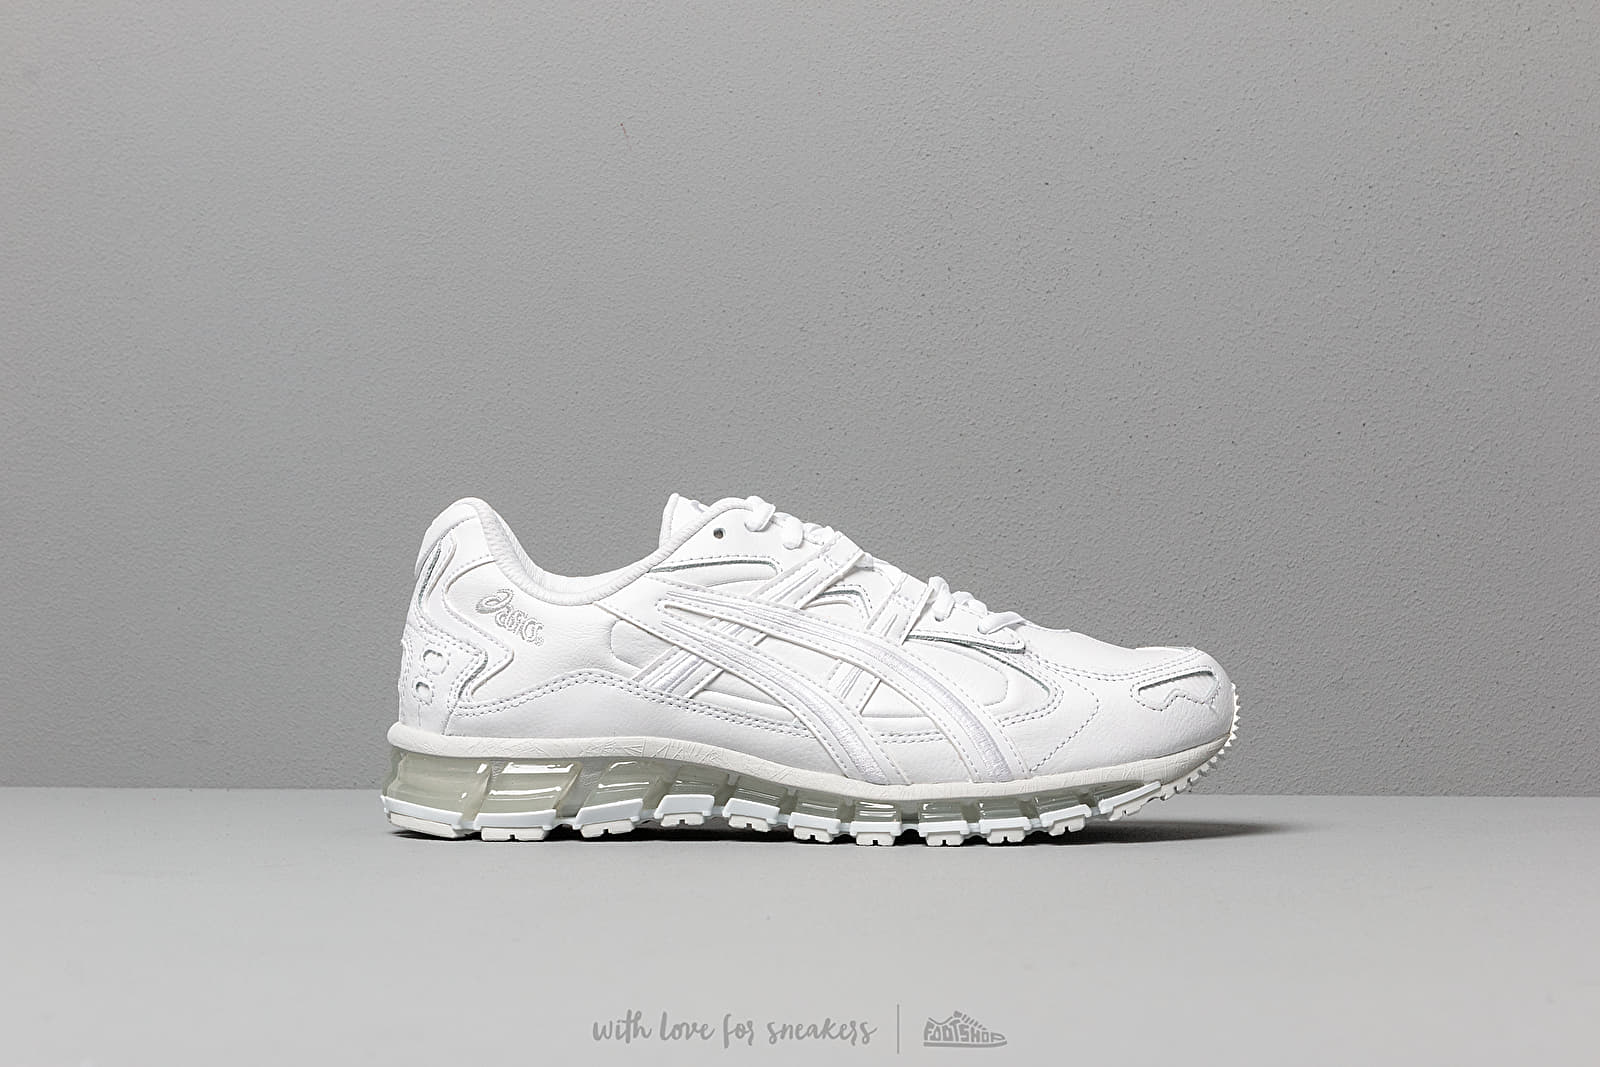 669178a6 Asics Gel-Kayano 5 360 White/ White at a great price 5 371 ГРН